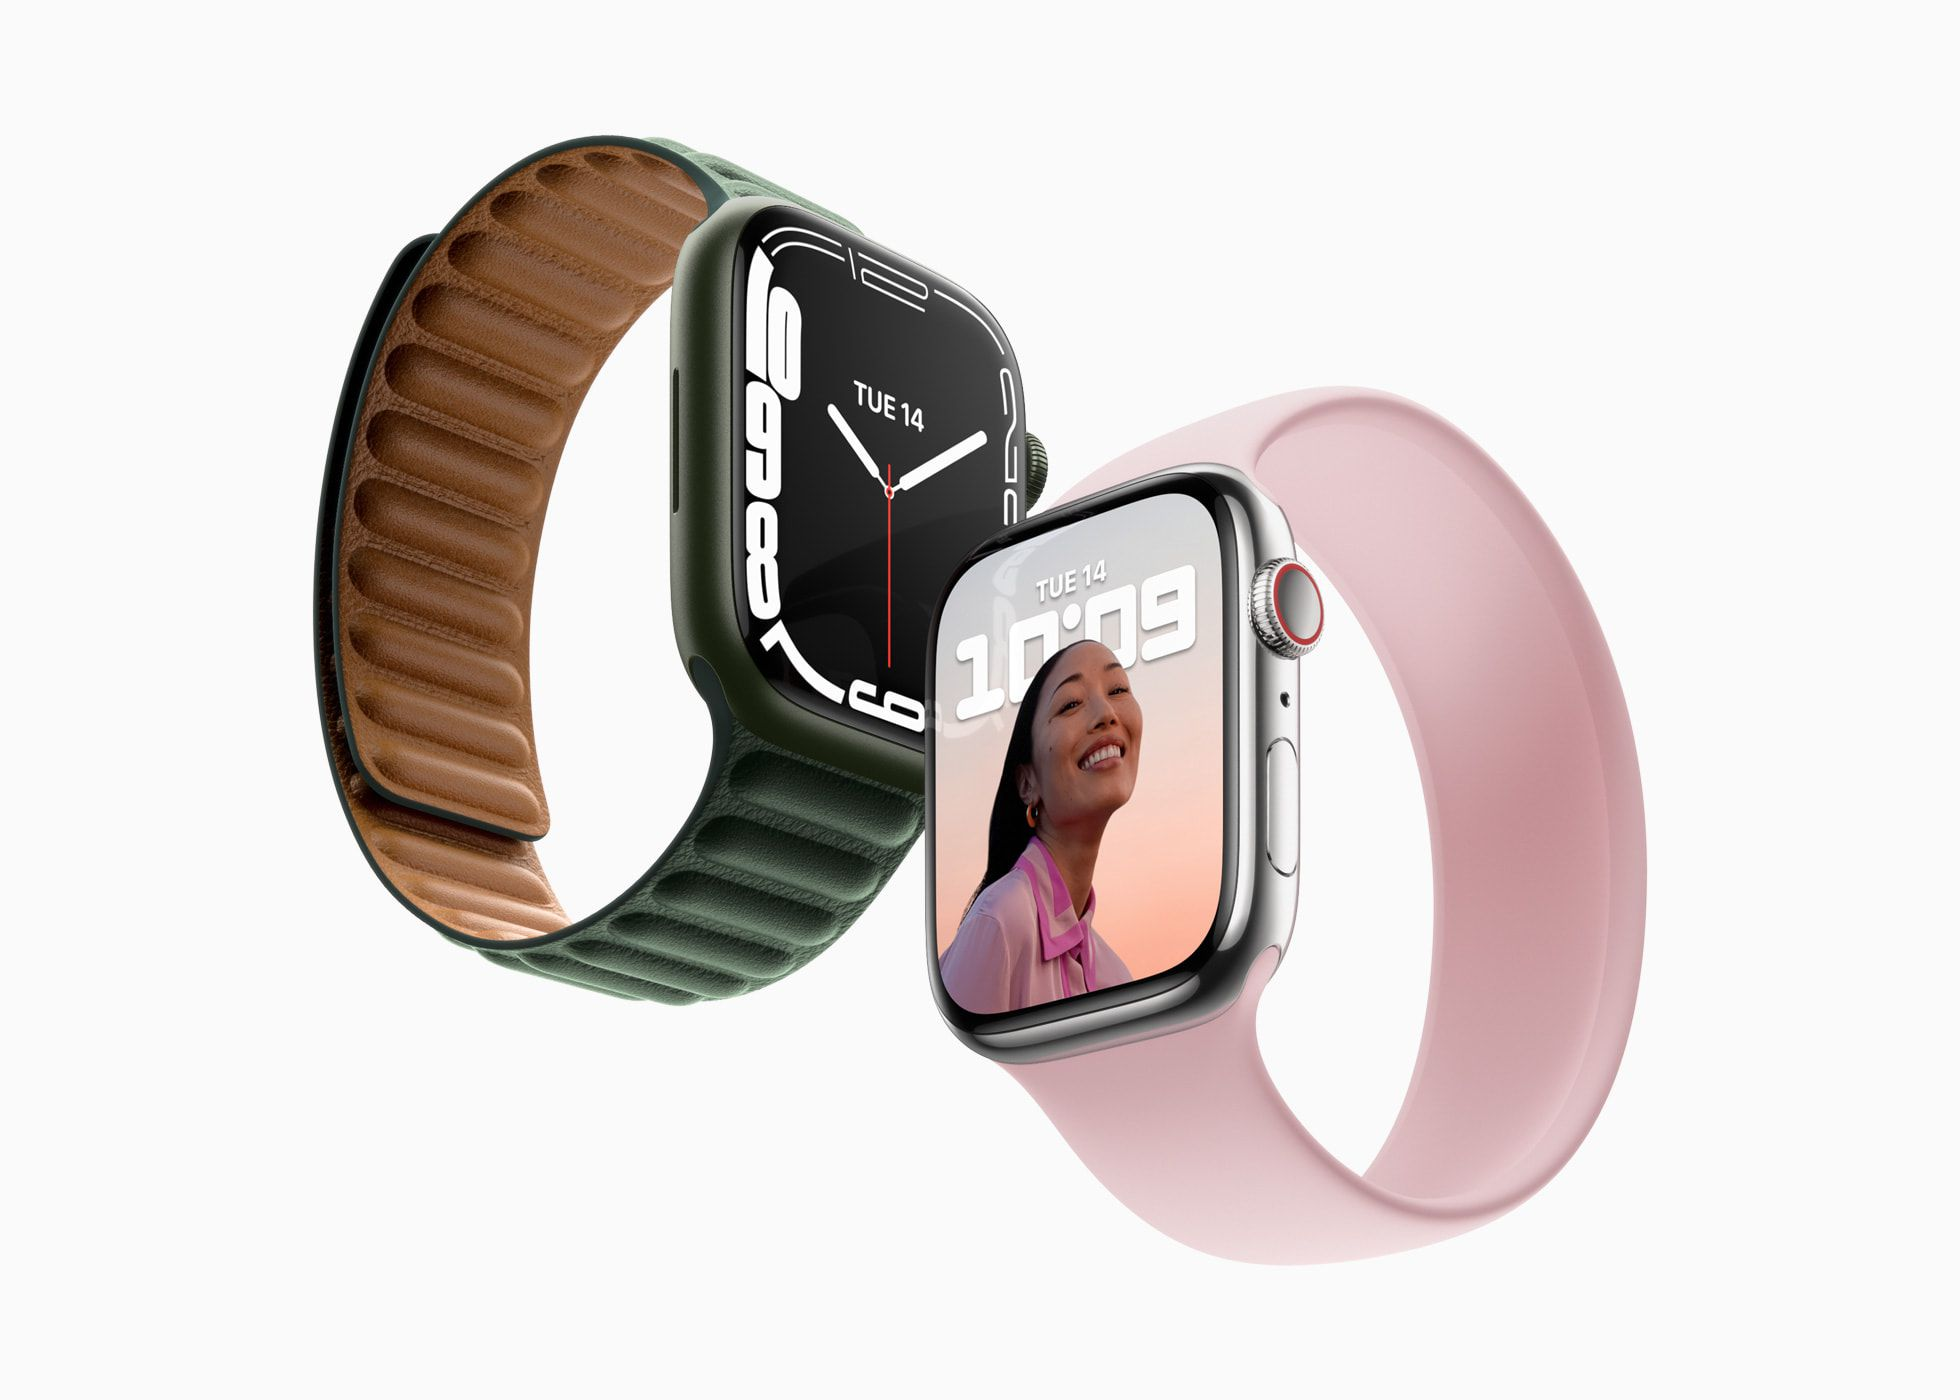 A product image of two Apple Watches, Series 7.